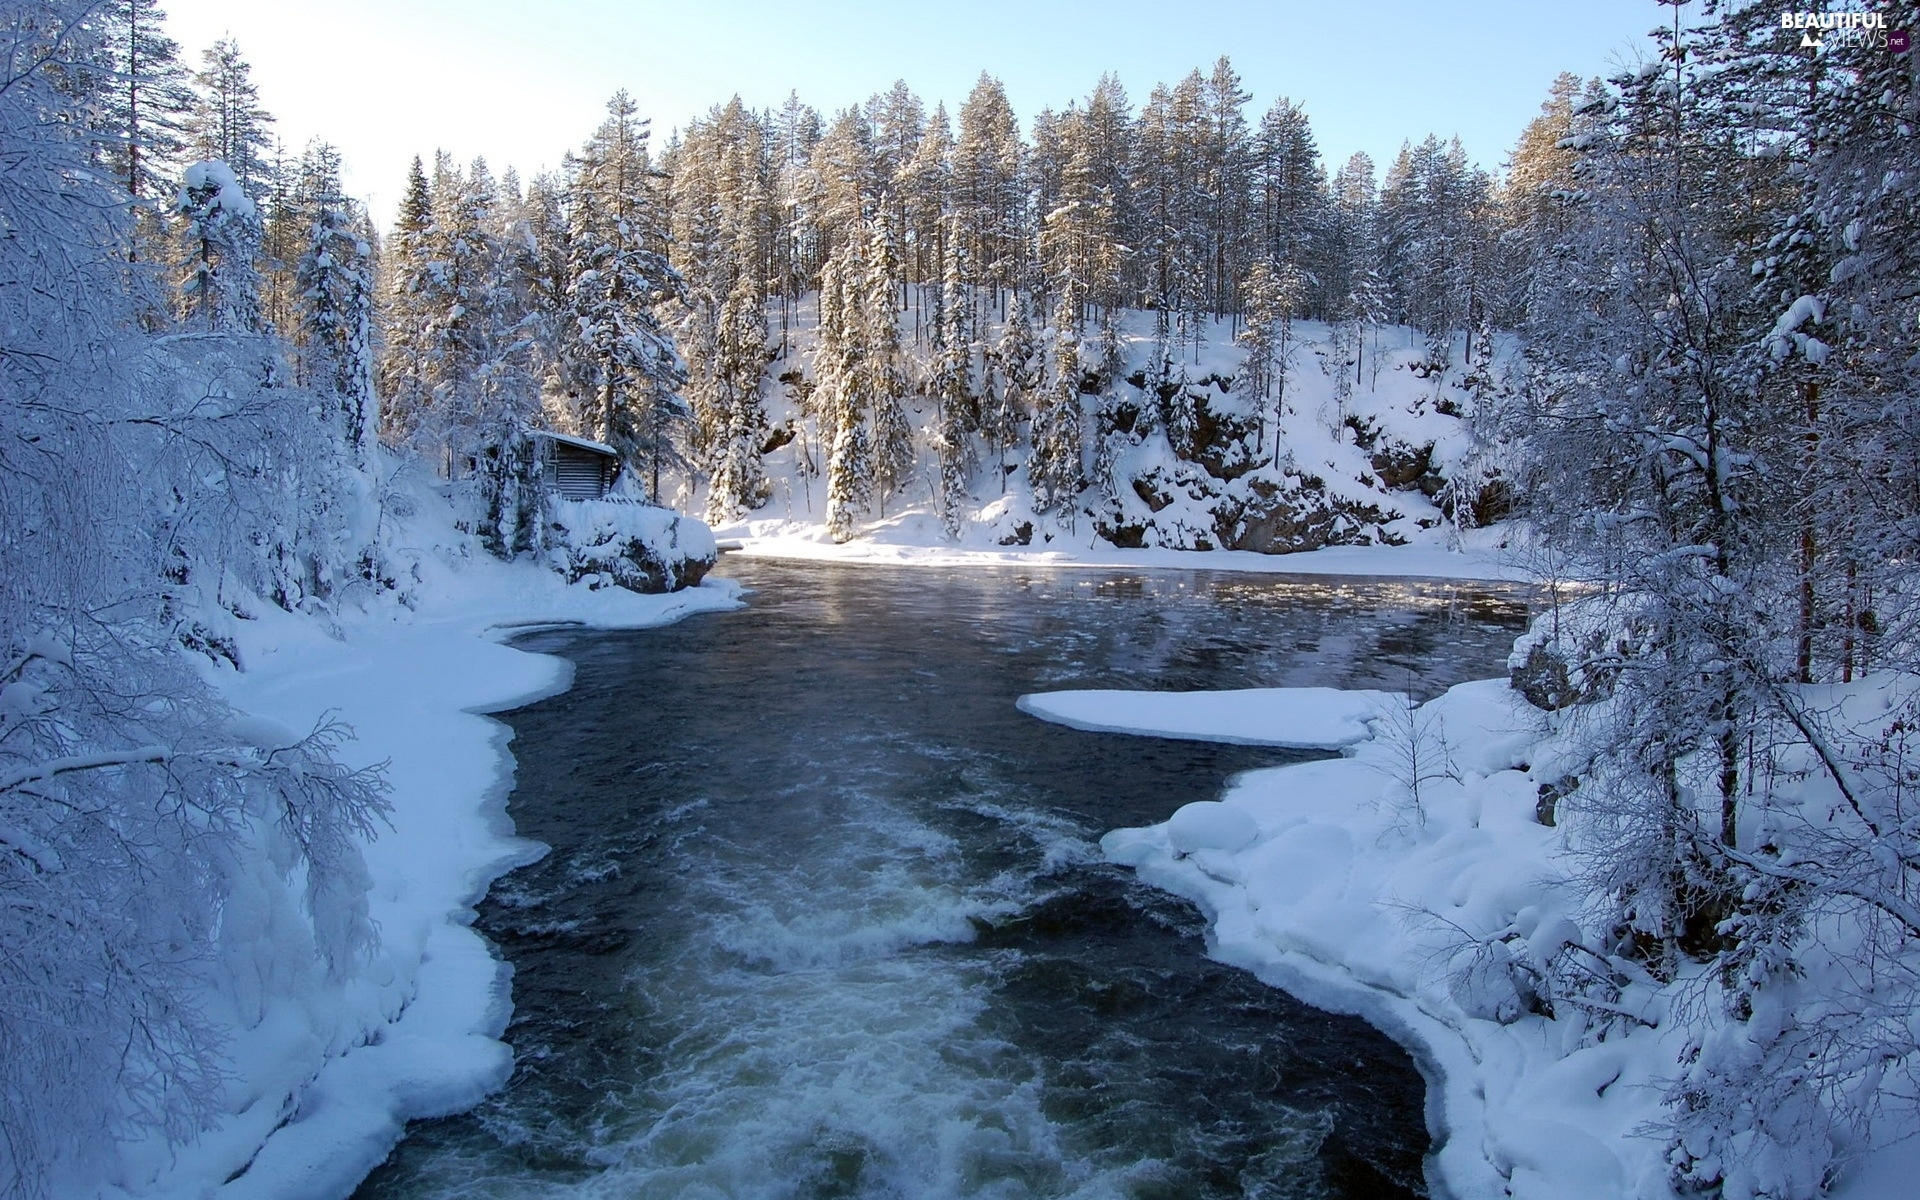 River, viewes, snow, trees